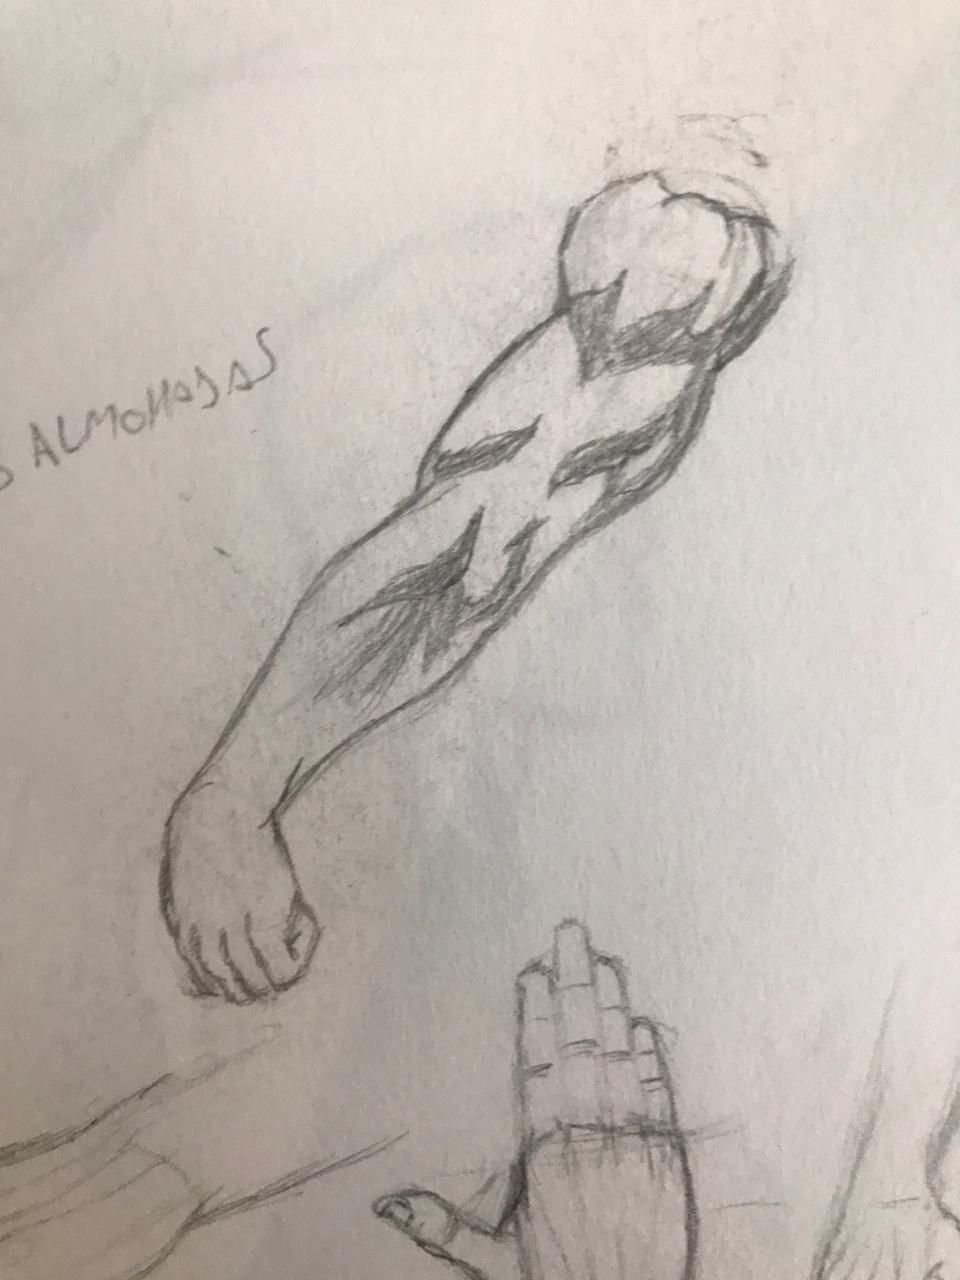 Some ripped arms - image 1 - student project